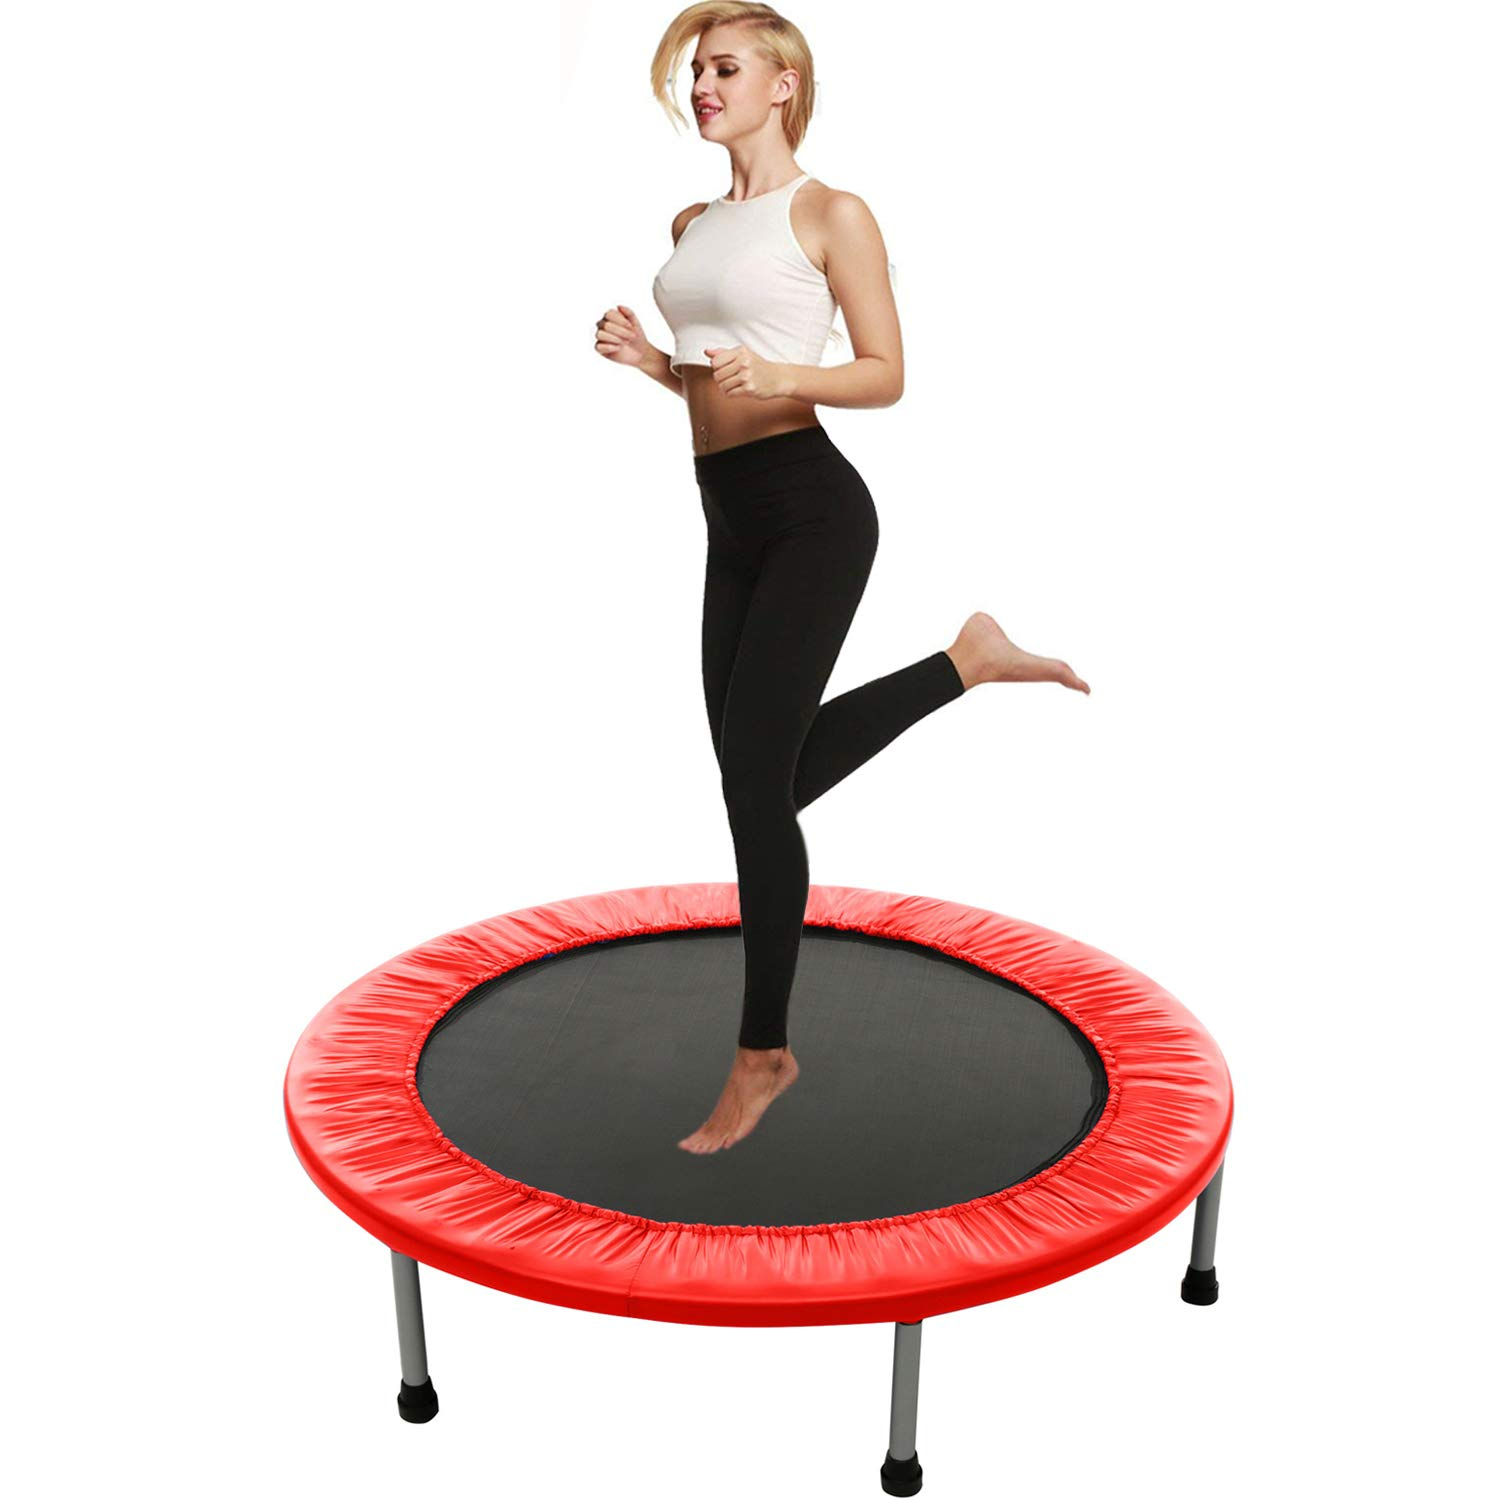 Balanu Mini Exercise Trampoline for Adults or Kids - Indoor Fitness Rebounder Trampoline with Safety Pad | Max. Load 200LBS (Red) by Balanu